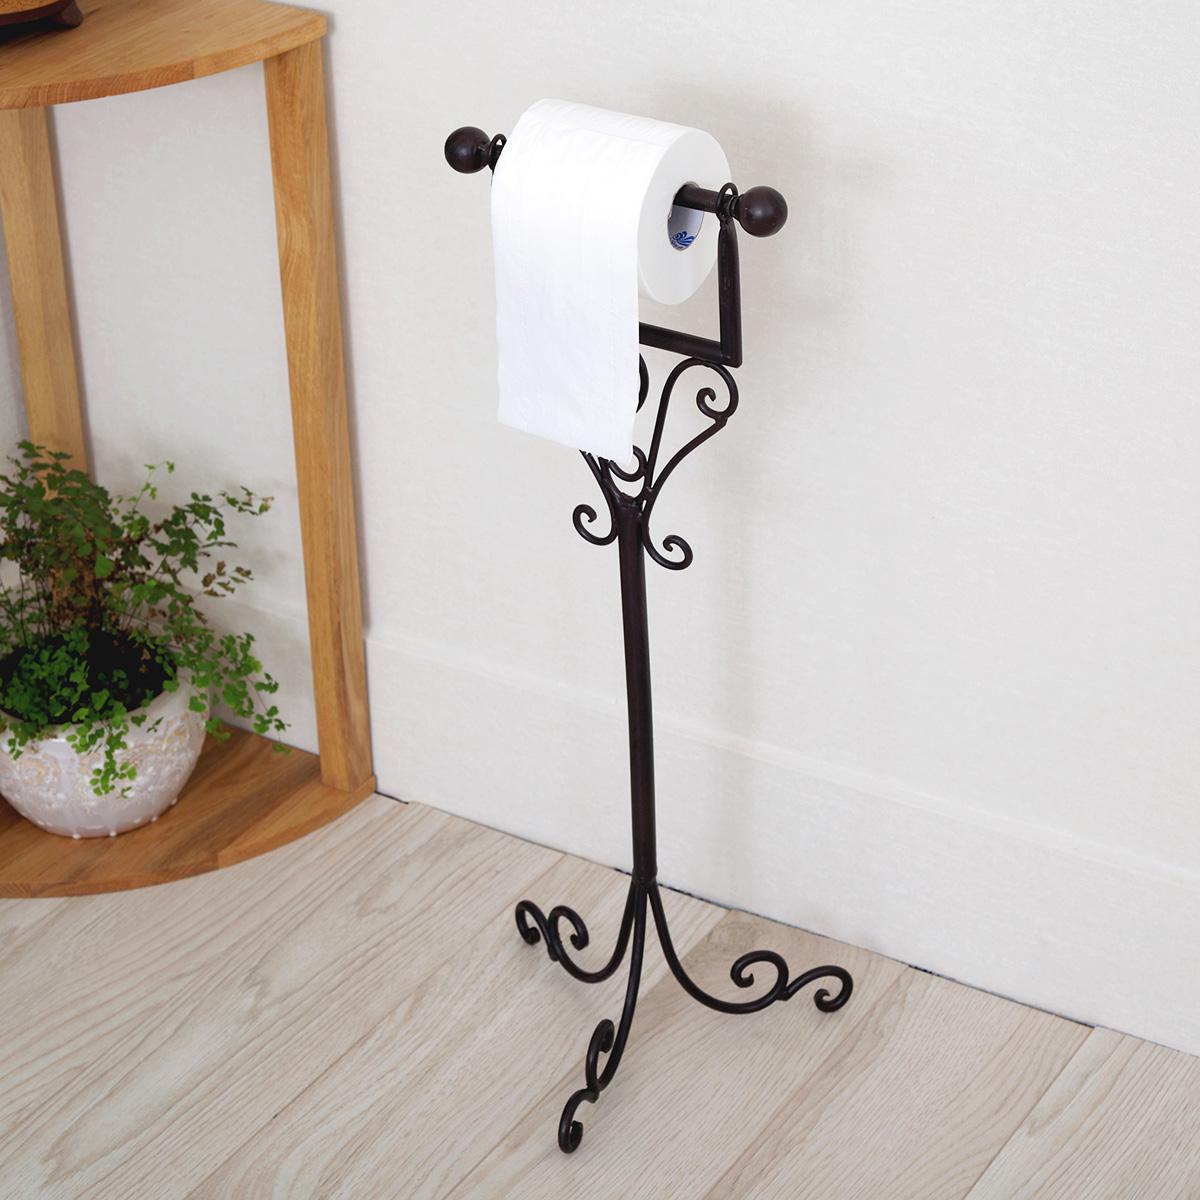 2017 Paper Towel Holder Paper Towel Holder Fashion Wrought Iron .